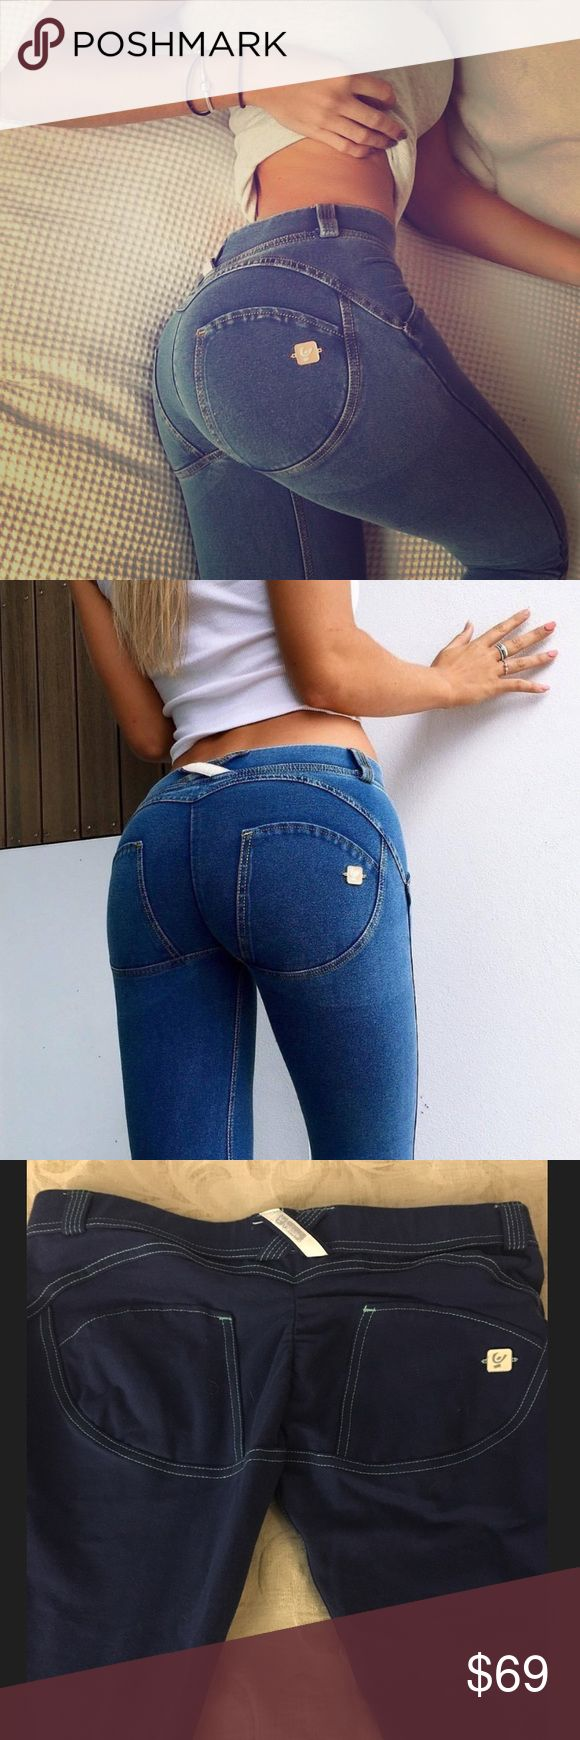 Authentic Freddy Store USA Denim Fabric: 80% Cotton, 20% Elastane. Designed especially to produce a push-up effect; These WR.UP® Denim trousers shape and improve your figure, thanks to a clever combination of stitching, tailoring and, especially, silicone typical of FREDDY WR.UP® technology. Jeans Skinny